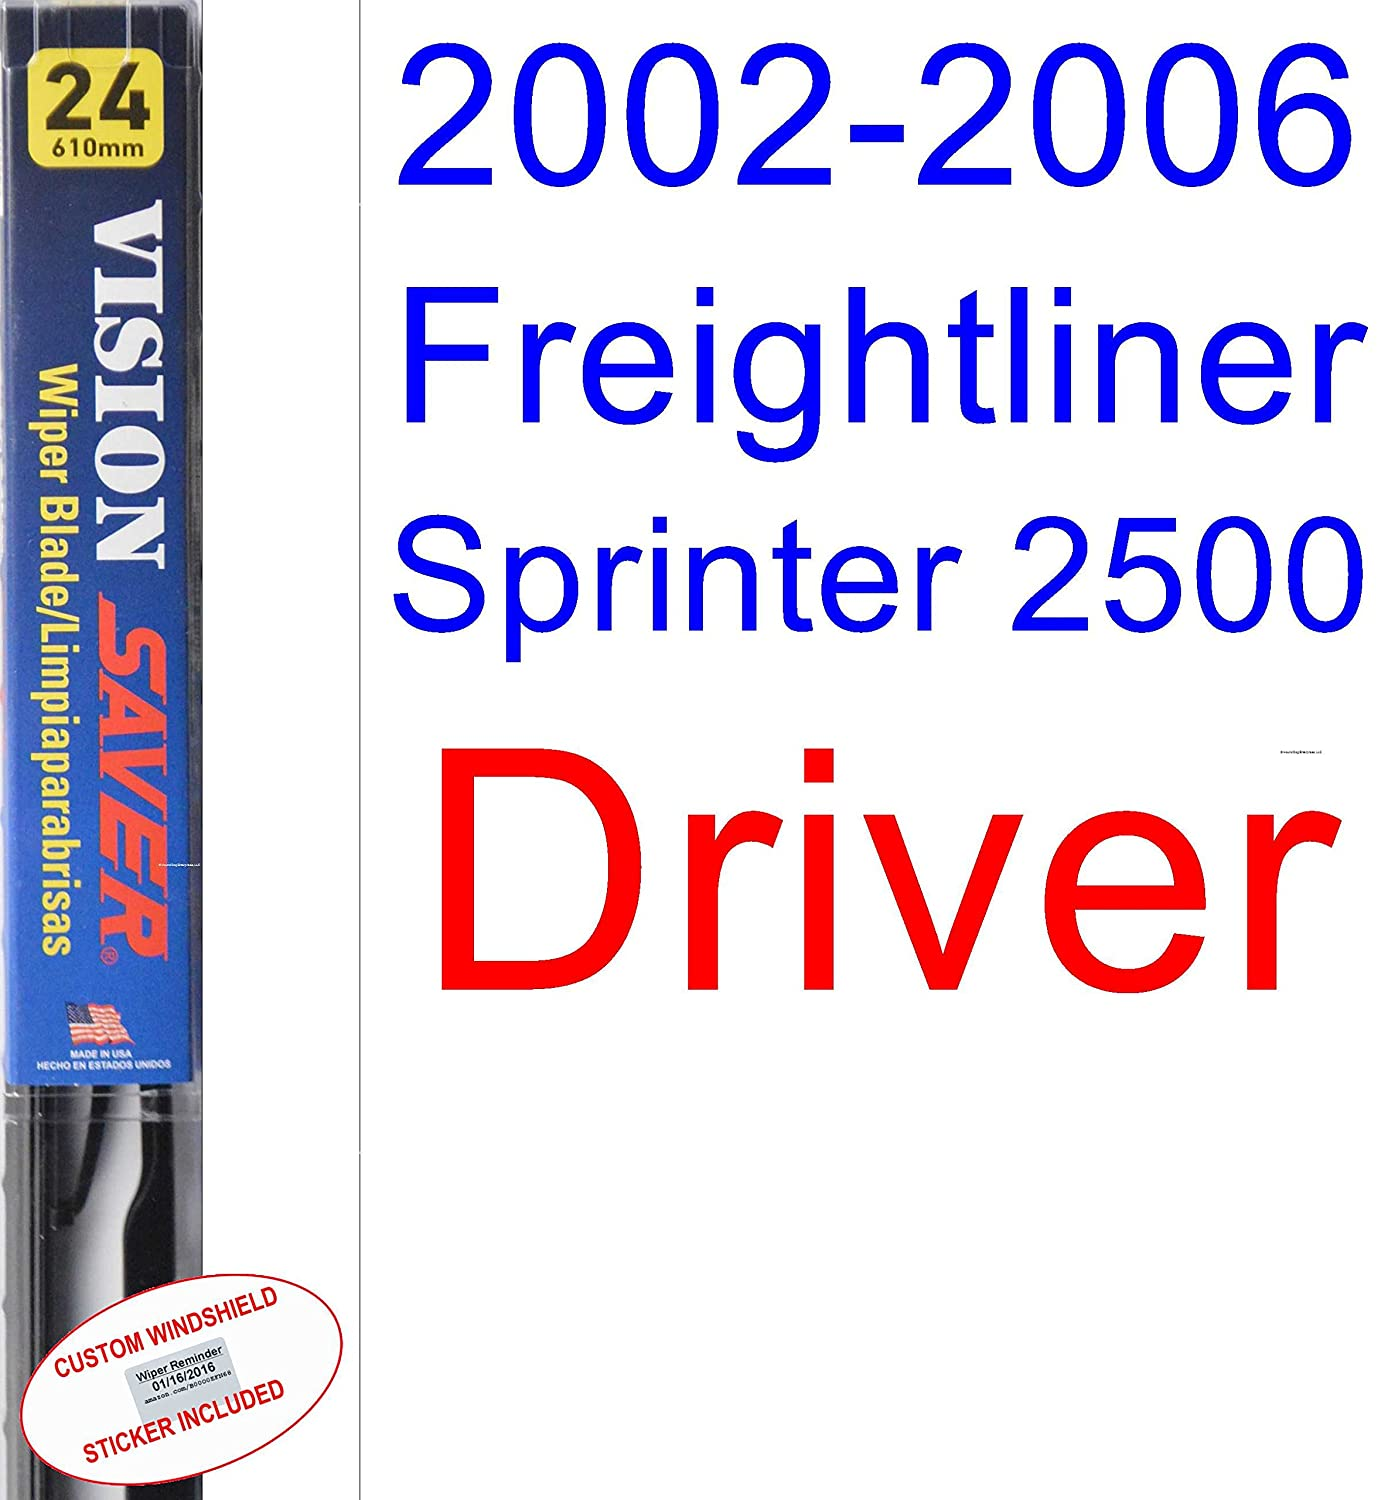 Amazon.com: 2002-2006 Freightliner Sprinter 2500 Wiper Blade (Driver) (Saver Automotive Products-Vision Saver) (2003,2004,2005): Automotive